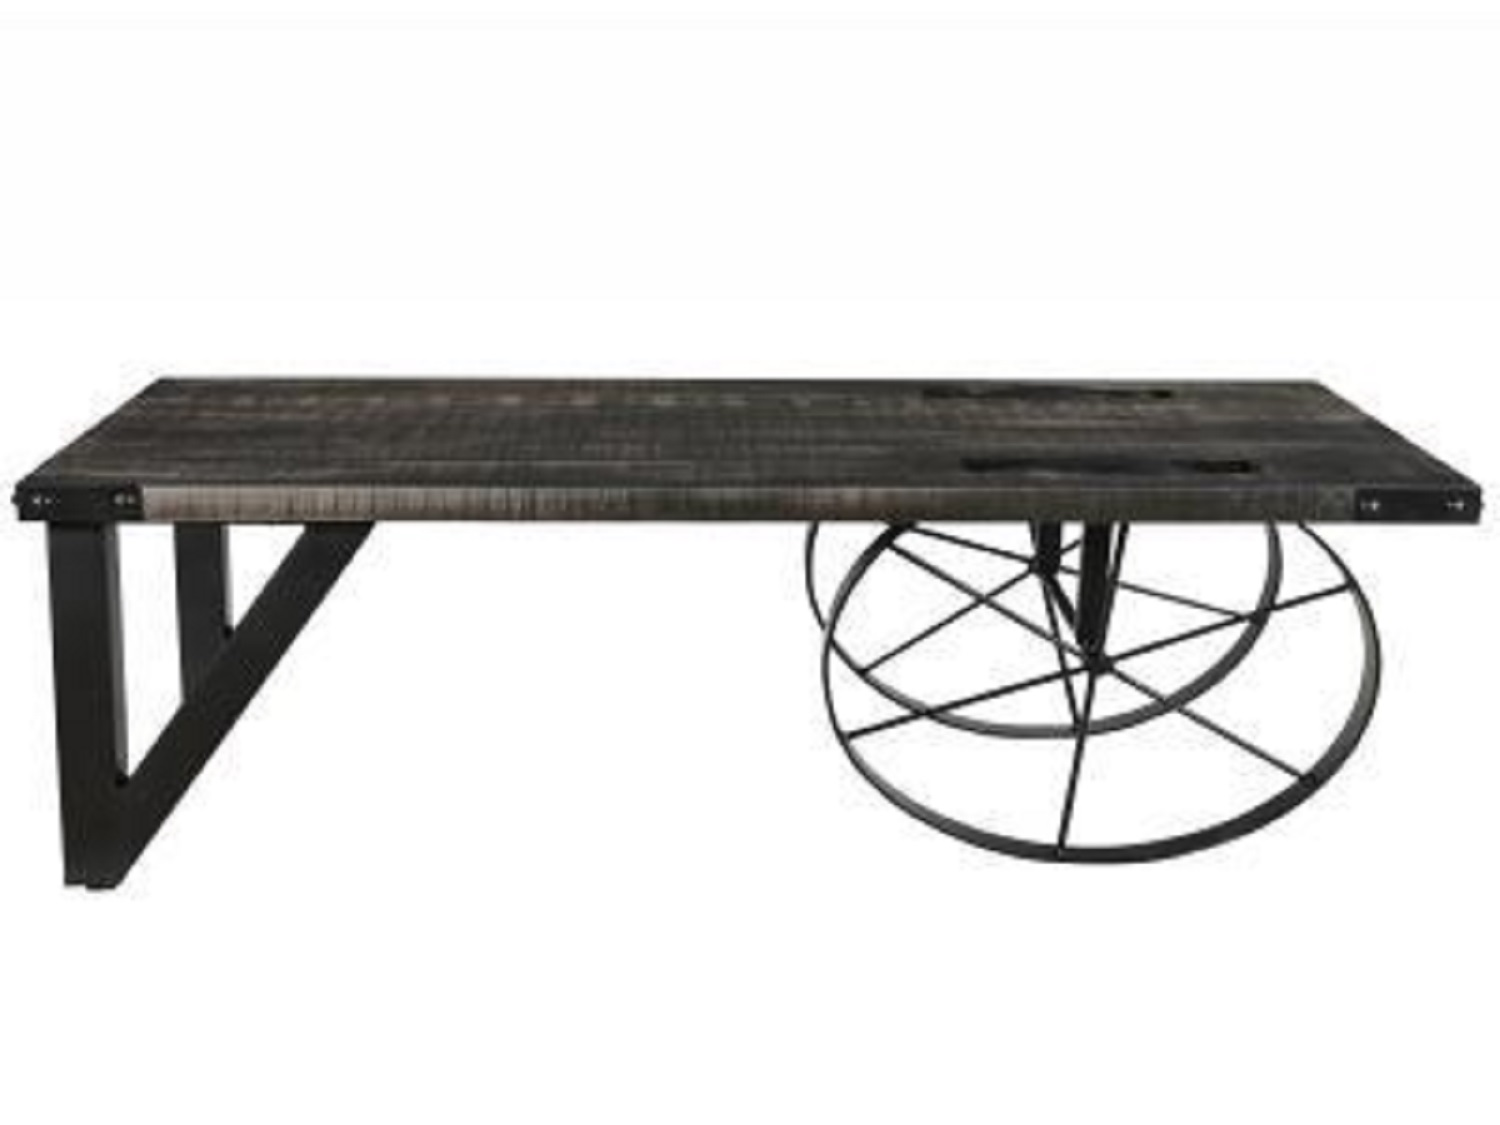 ZAHIR-COFFEE TABLE-DISTRESSED GREY, 841173026905, Console Table by Midha Furniture to Brampton, Mississauga, Etobicoke, Toronto, Scraborough, Caledon, Oakville, Markham, Ajax, Pickering, Oshawa, Richmondhill, Kitchener, Hamilton and GTA area